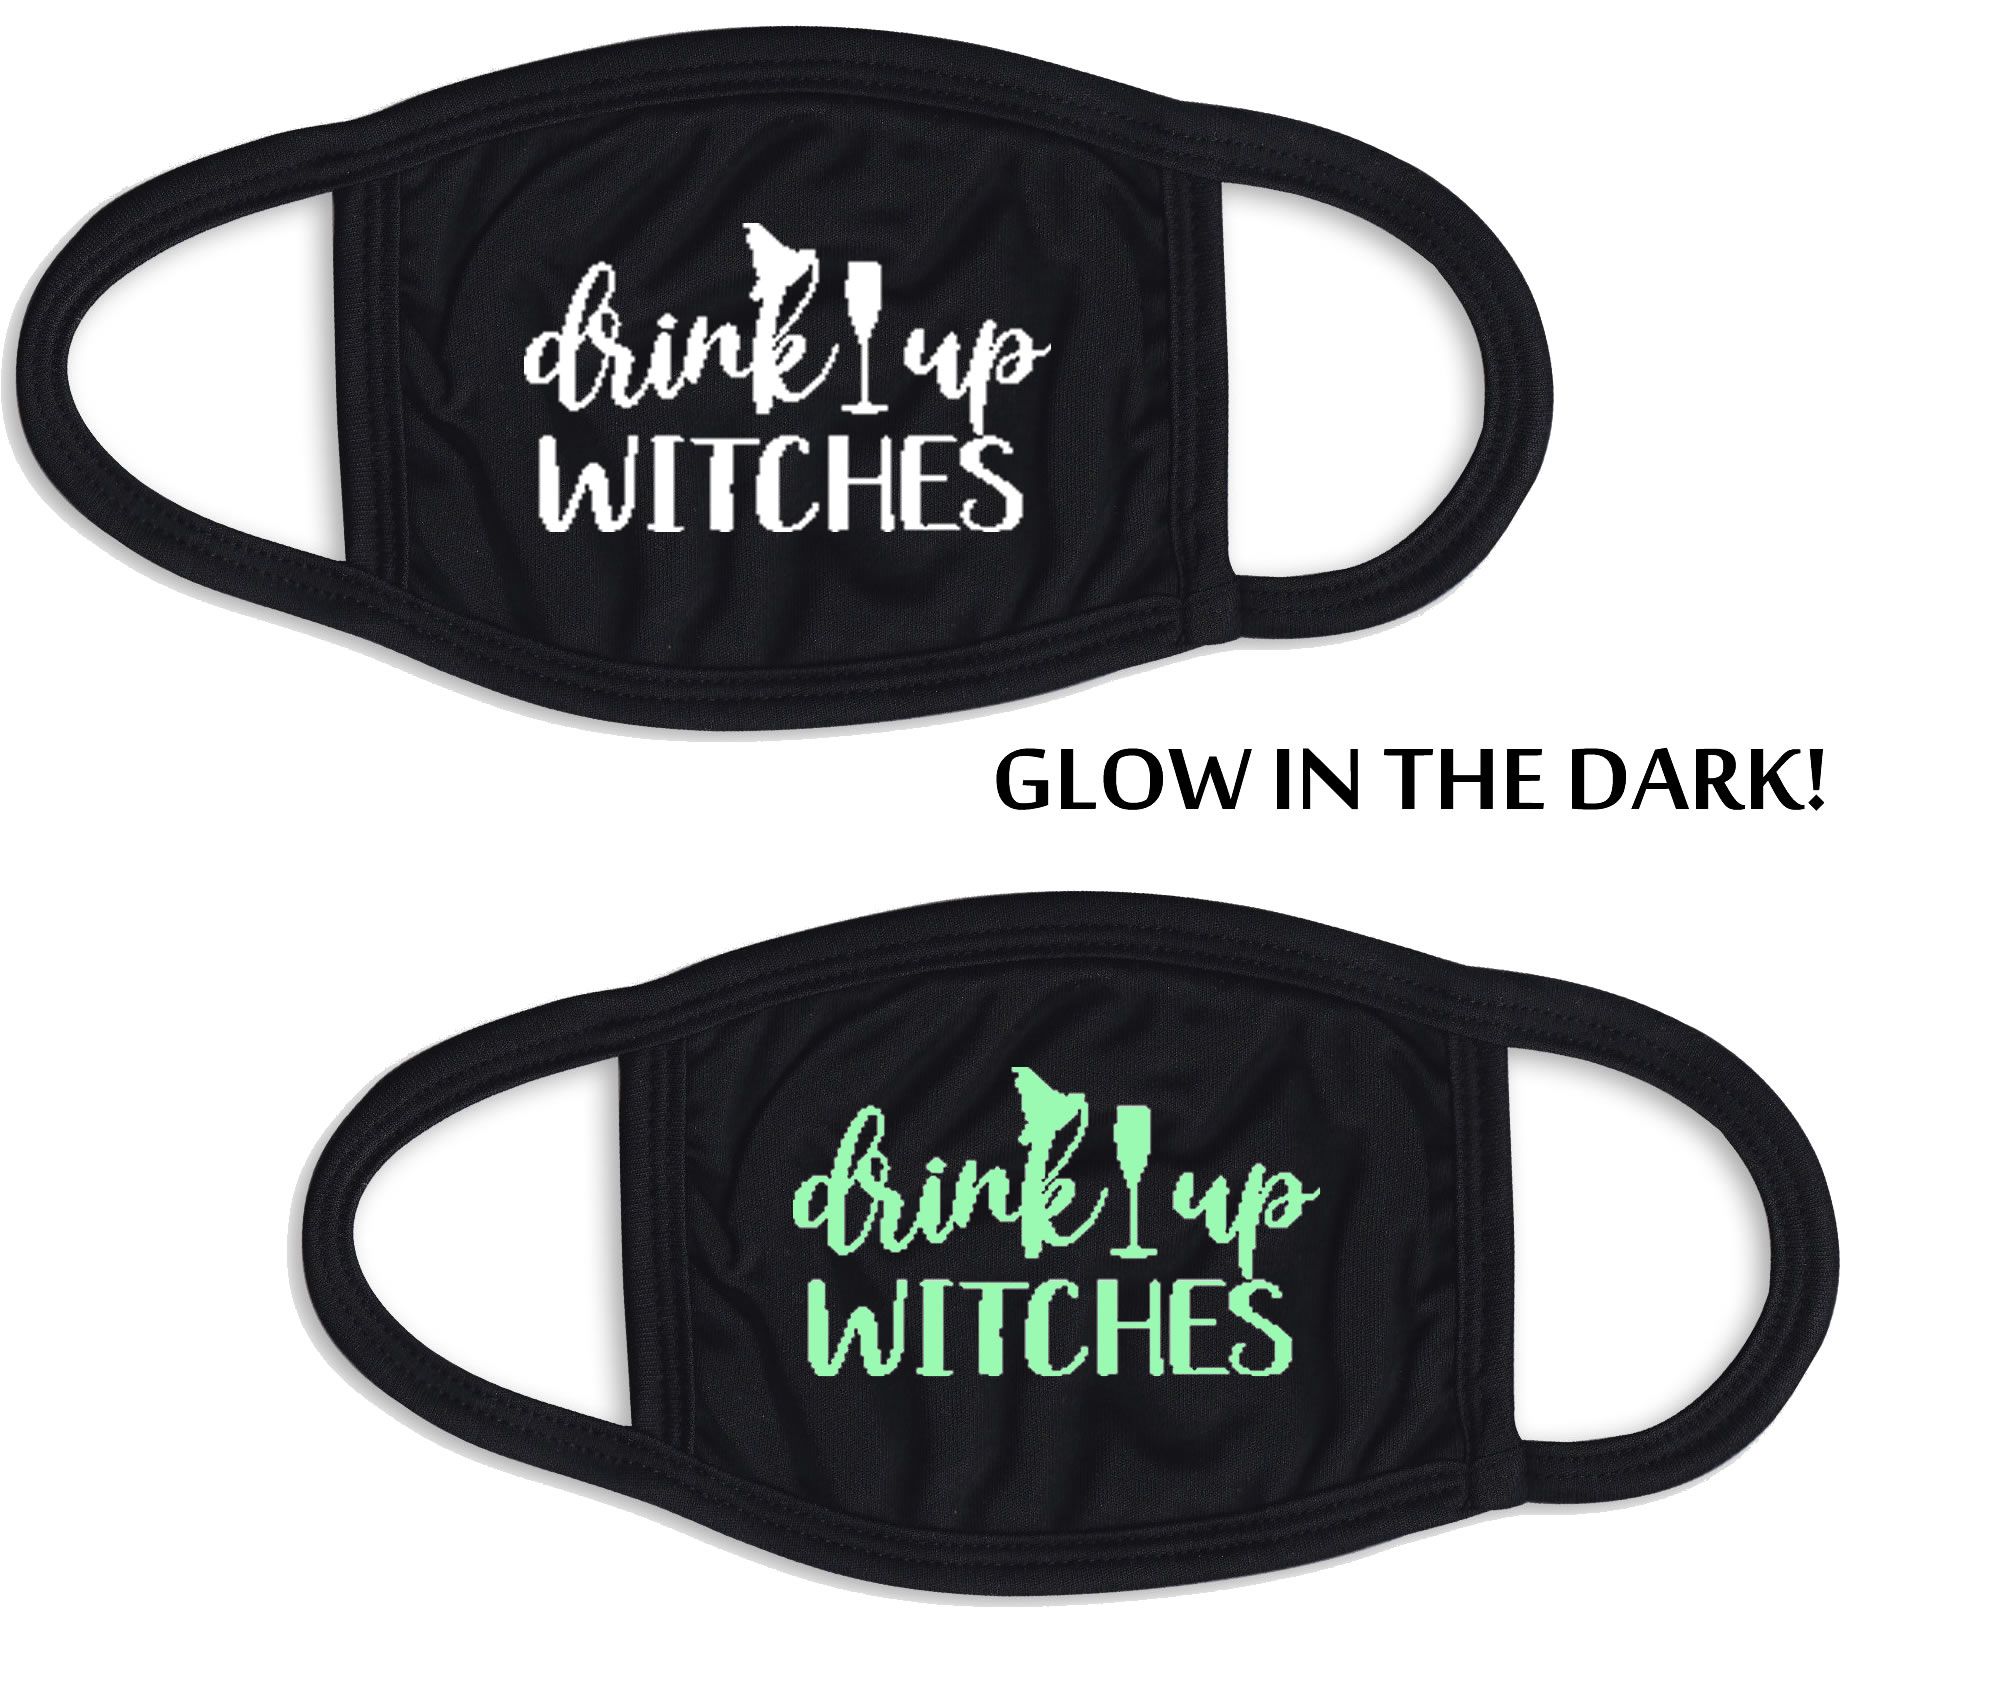 Drink Up Witches Face Mask